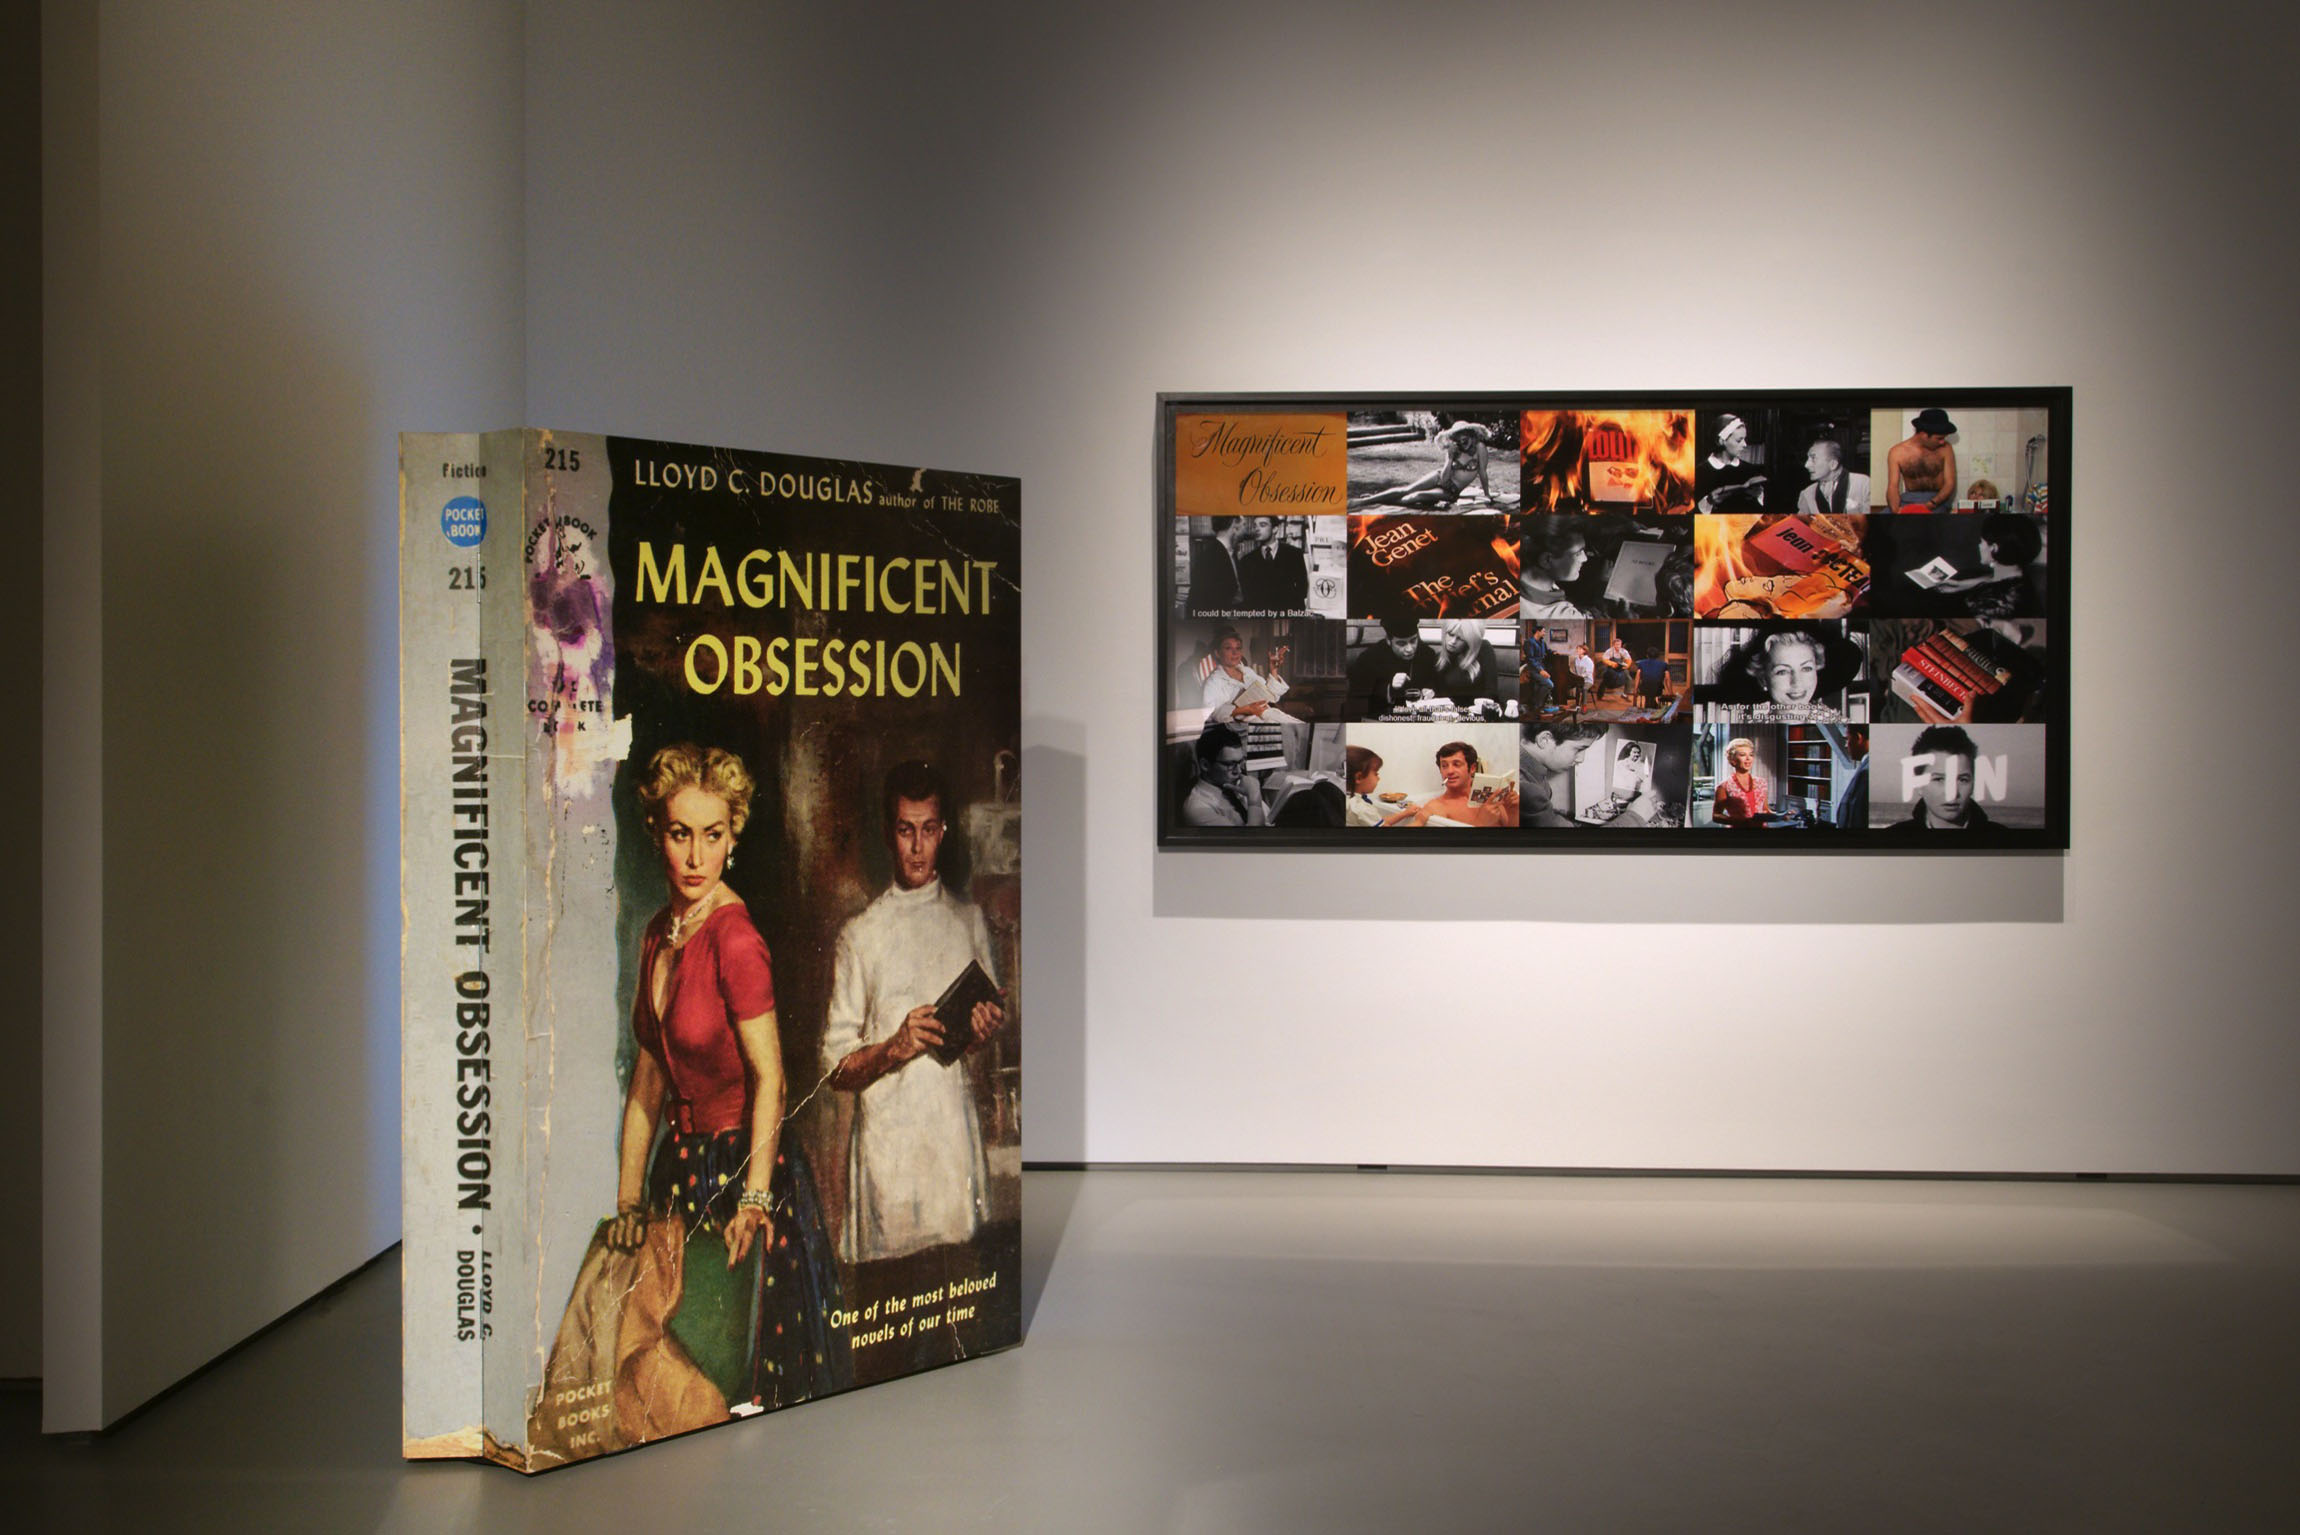 2013 Magnificent Obsession